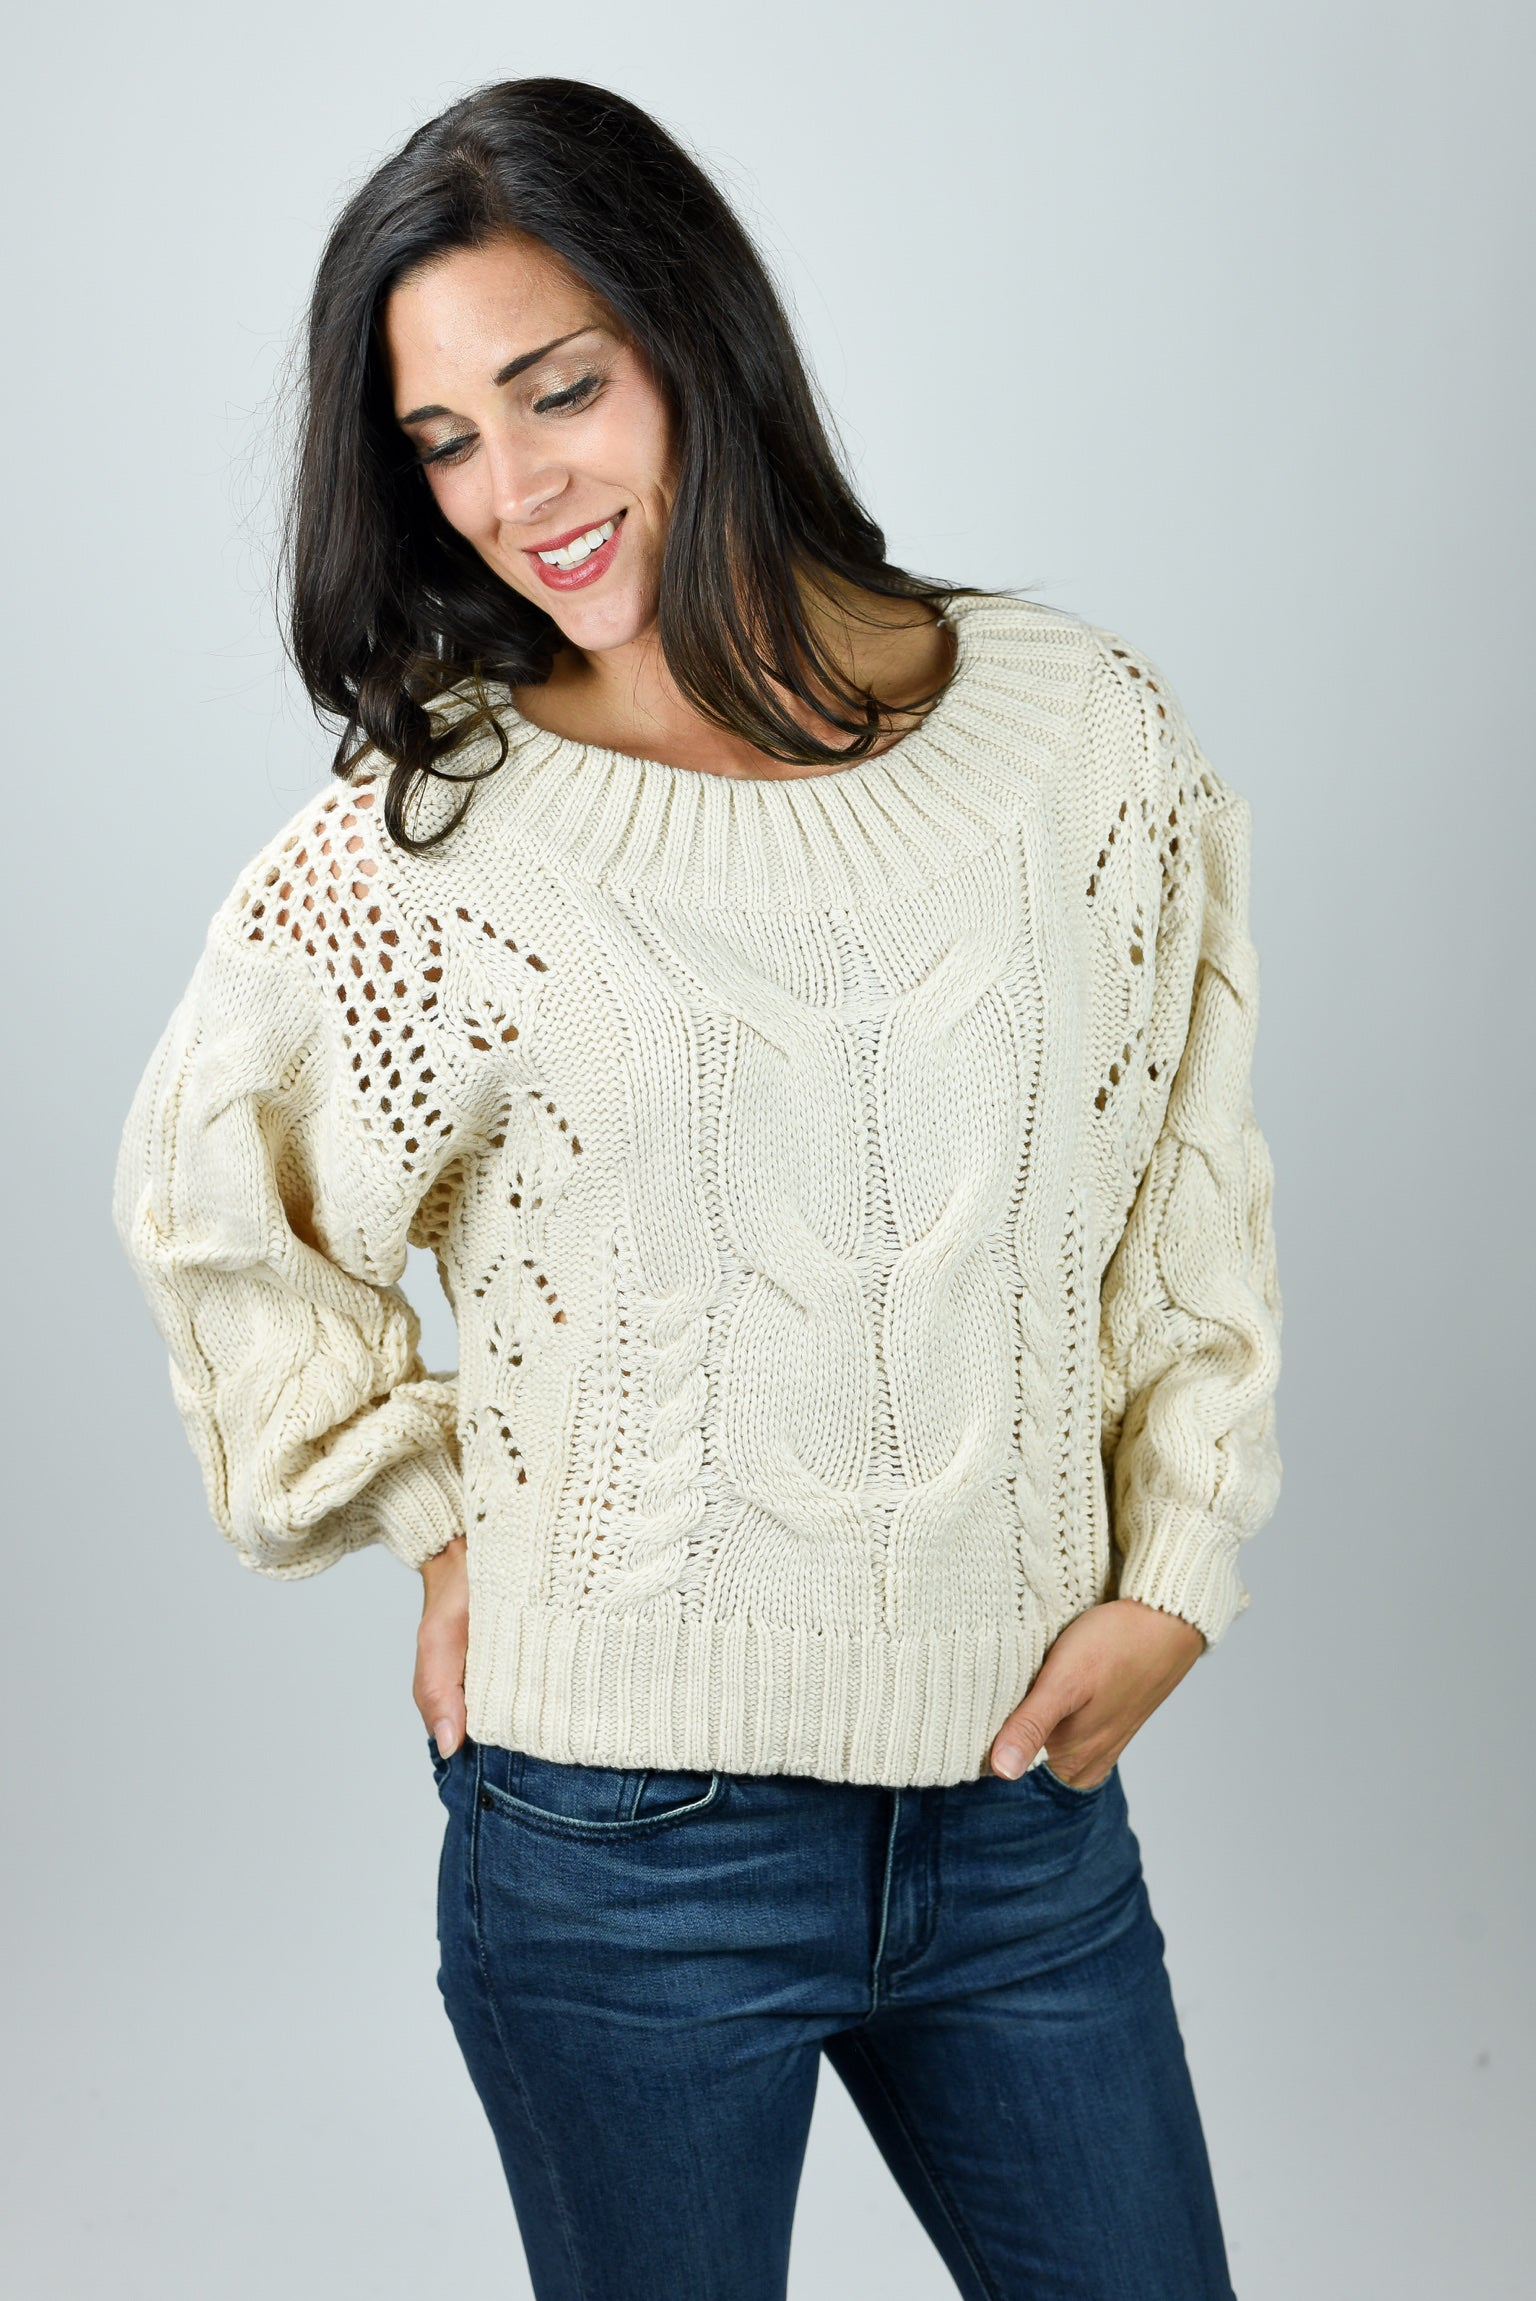 Limitless Possibilities Cream Cable Sweater